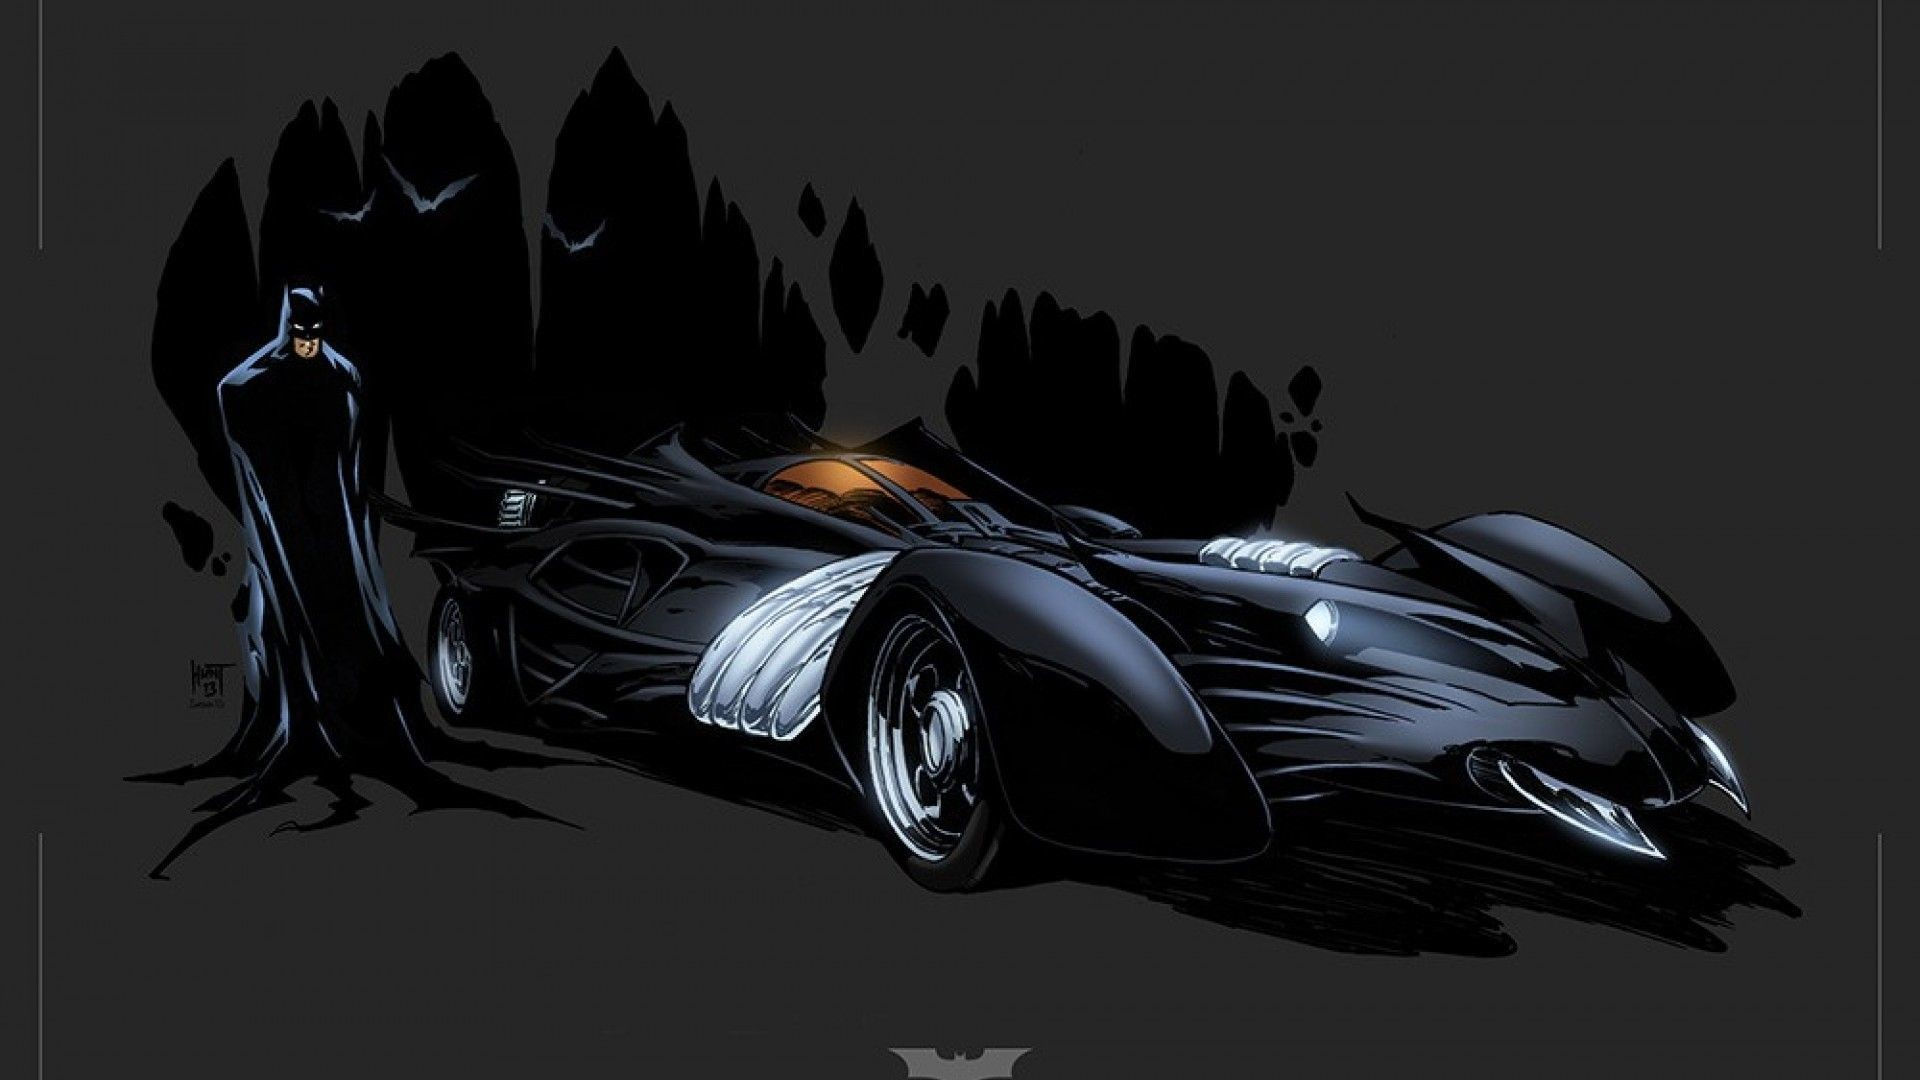 1920x1080 Batmobile Wallpapers Wallpaper 1920×1080 Batman mobile wallpaper (25  Wallpapers) | Adorable Wallpapers